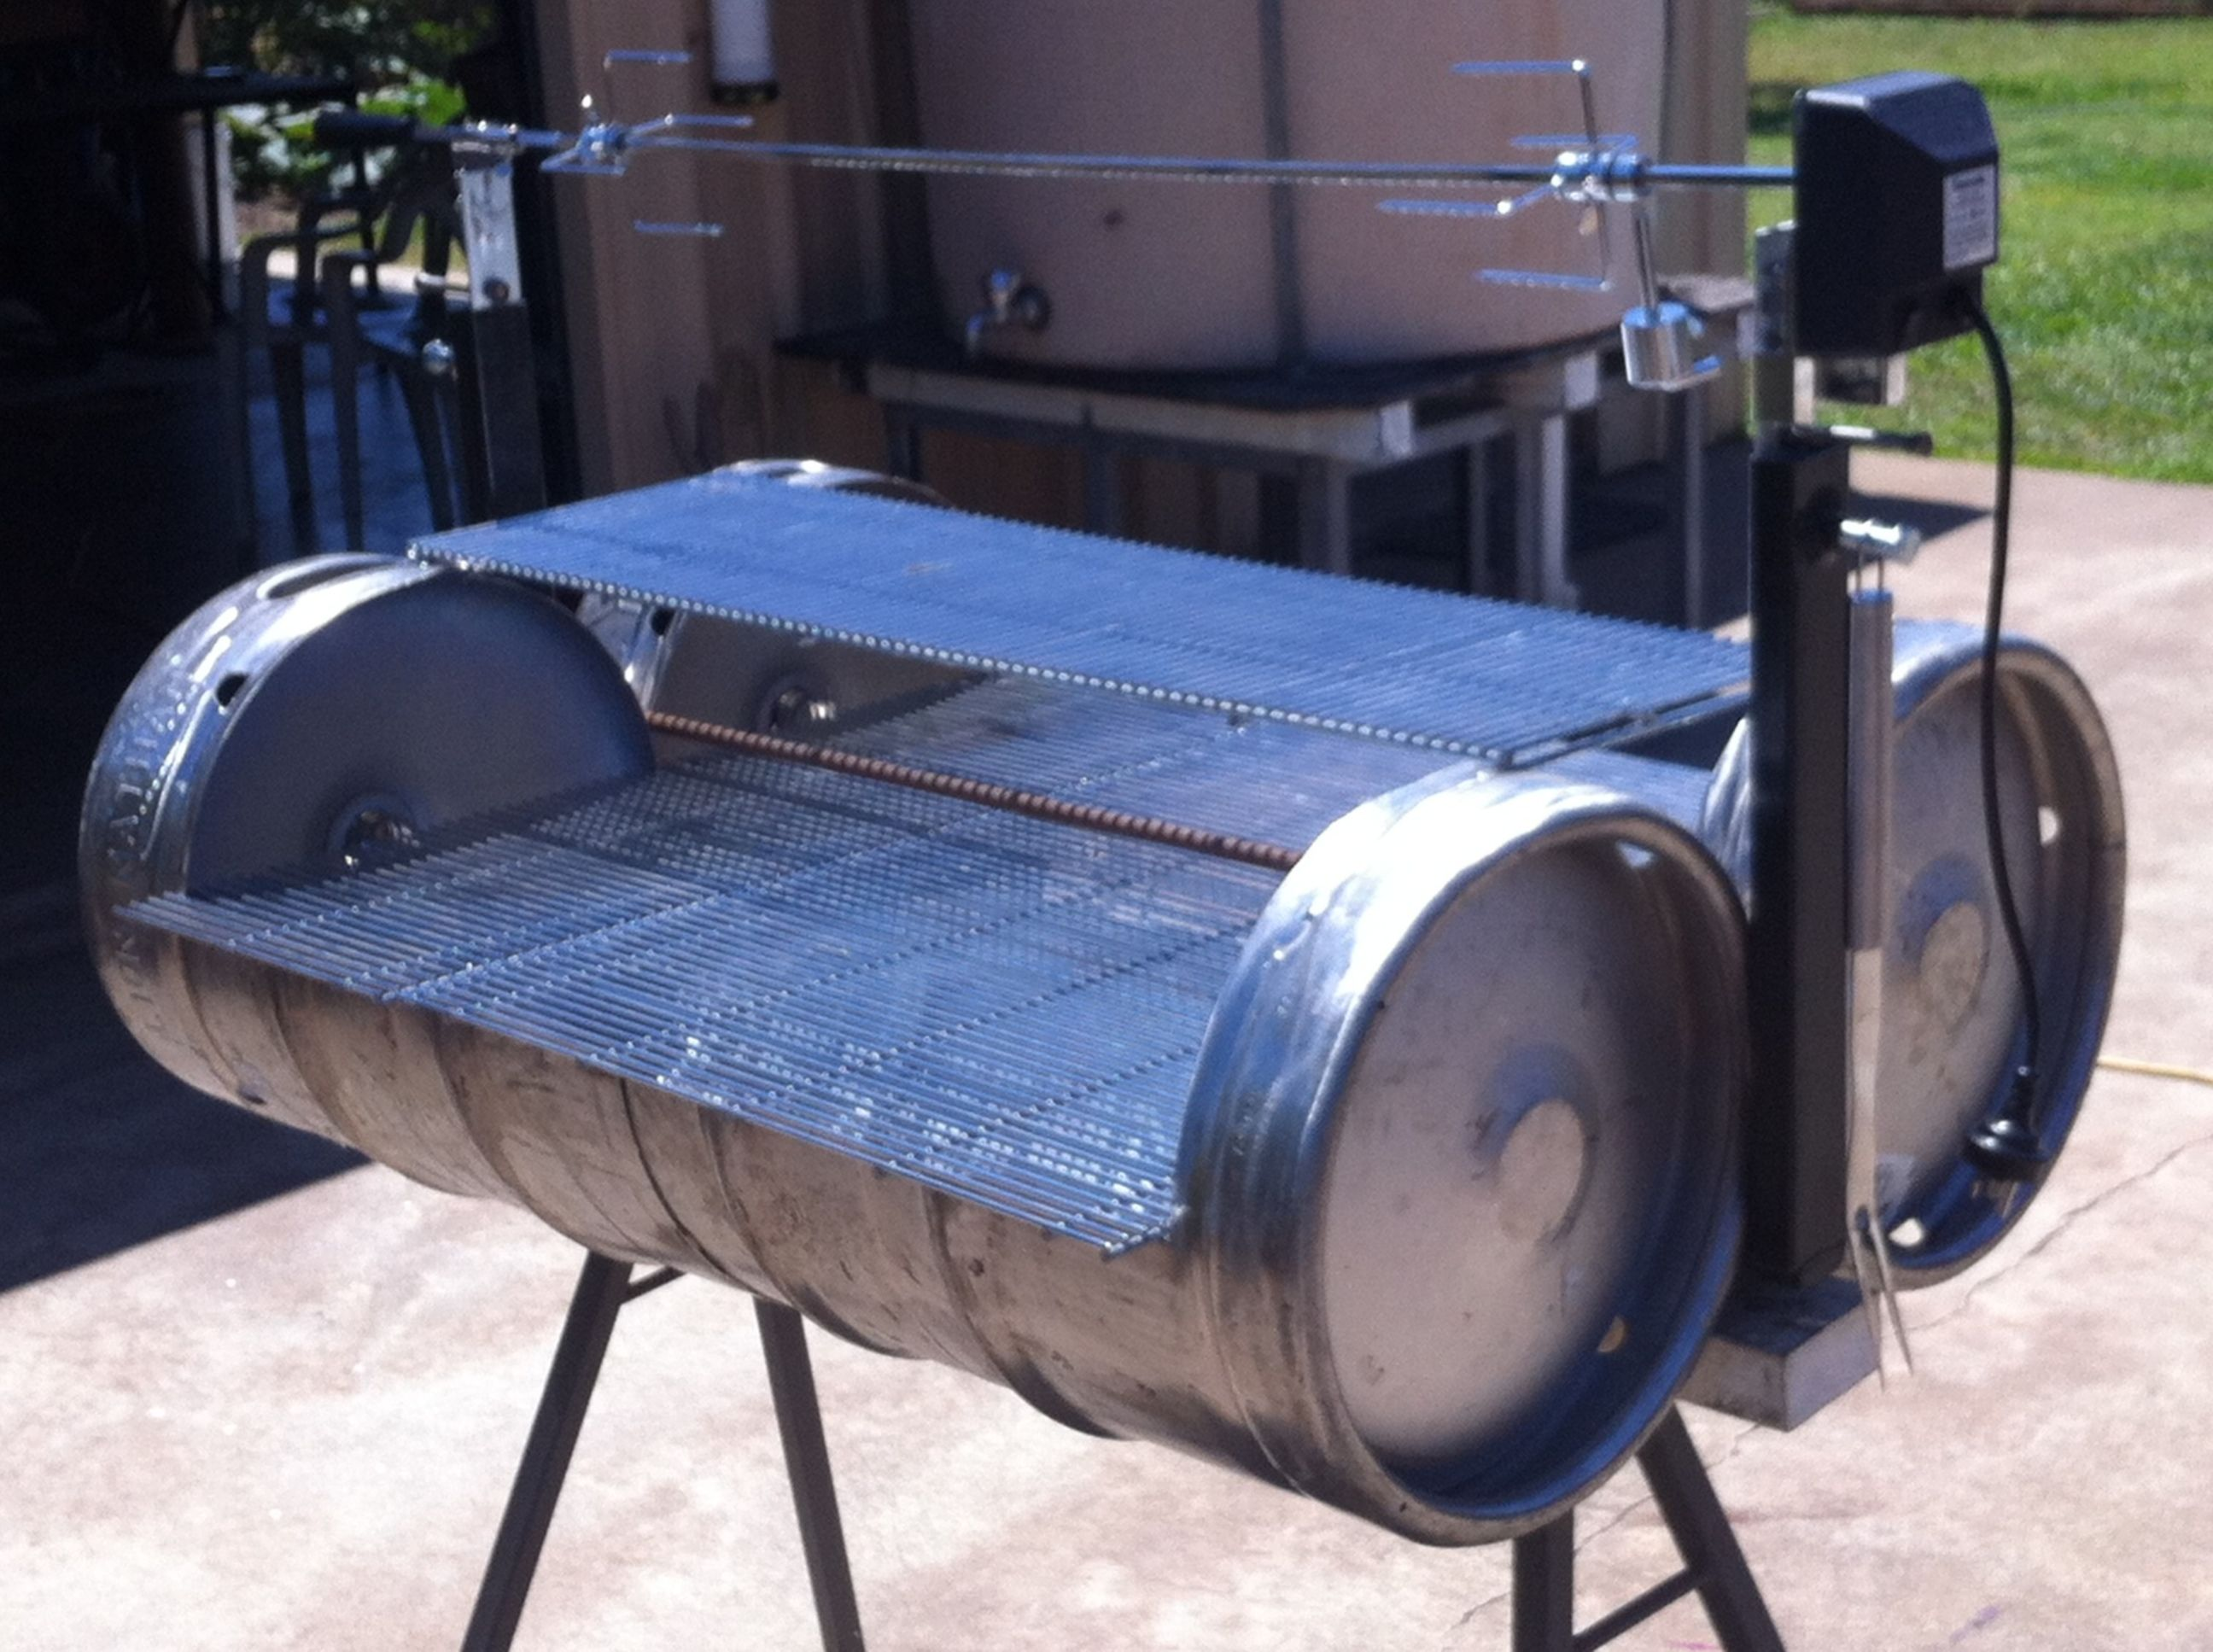 Keg bbq with rotisserie